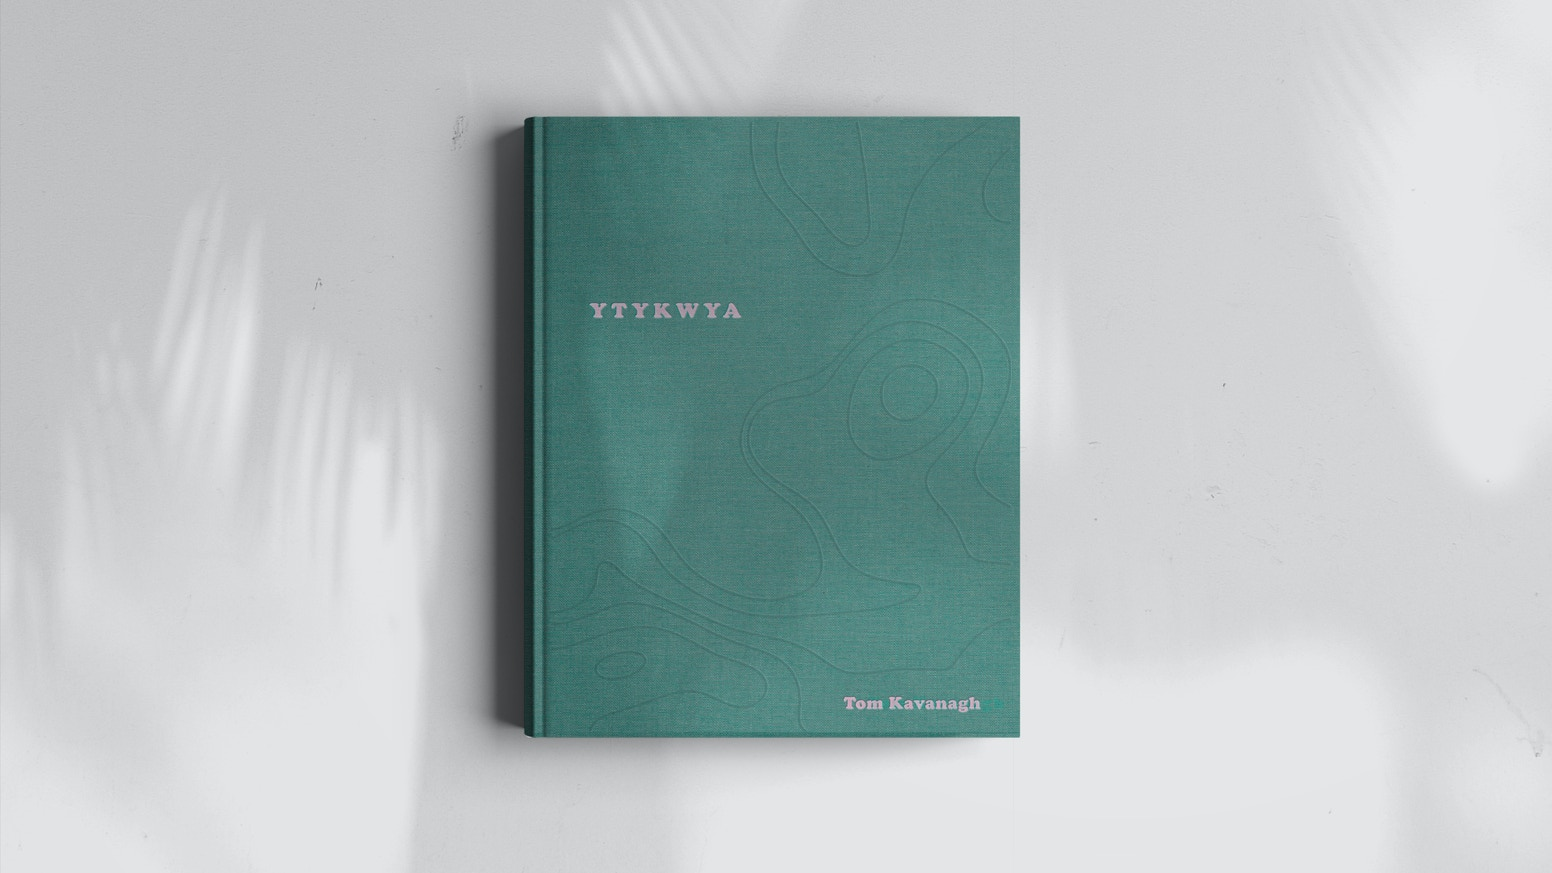 YTKWYA is a dream-like narrative about being lost, told with photographs in a beautiful hardcover, cloth bound book. A big thank you to everyone who help make this happen.